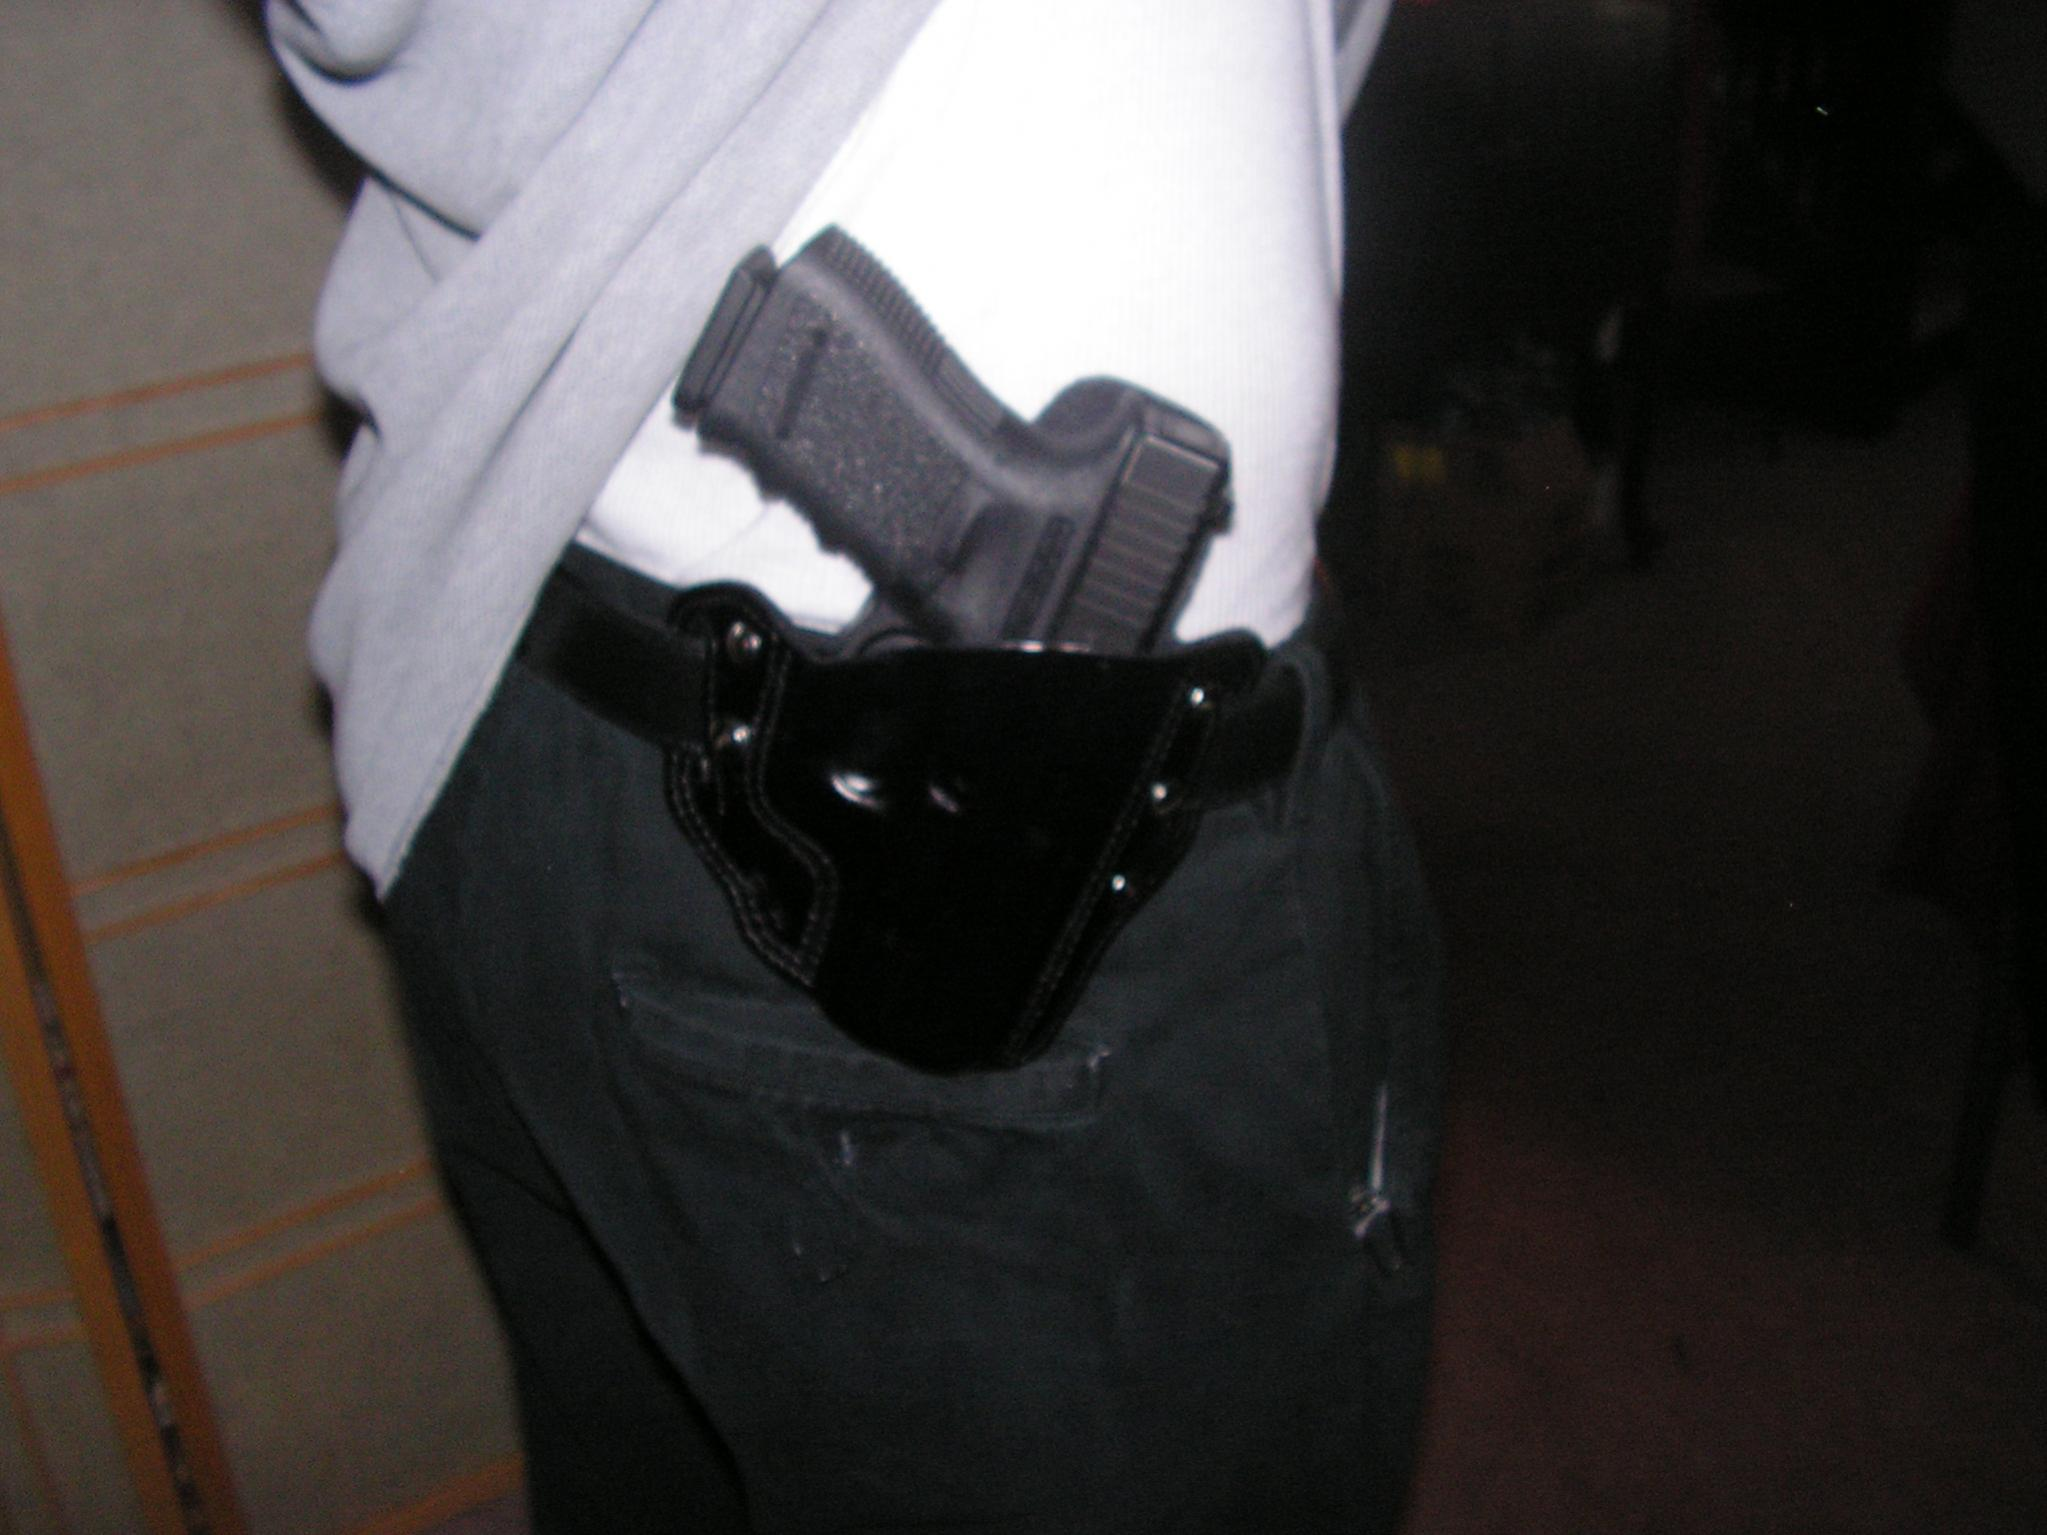 G19 Holster Rig setup pics wanted-pict0117.jpg